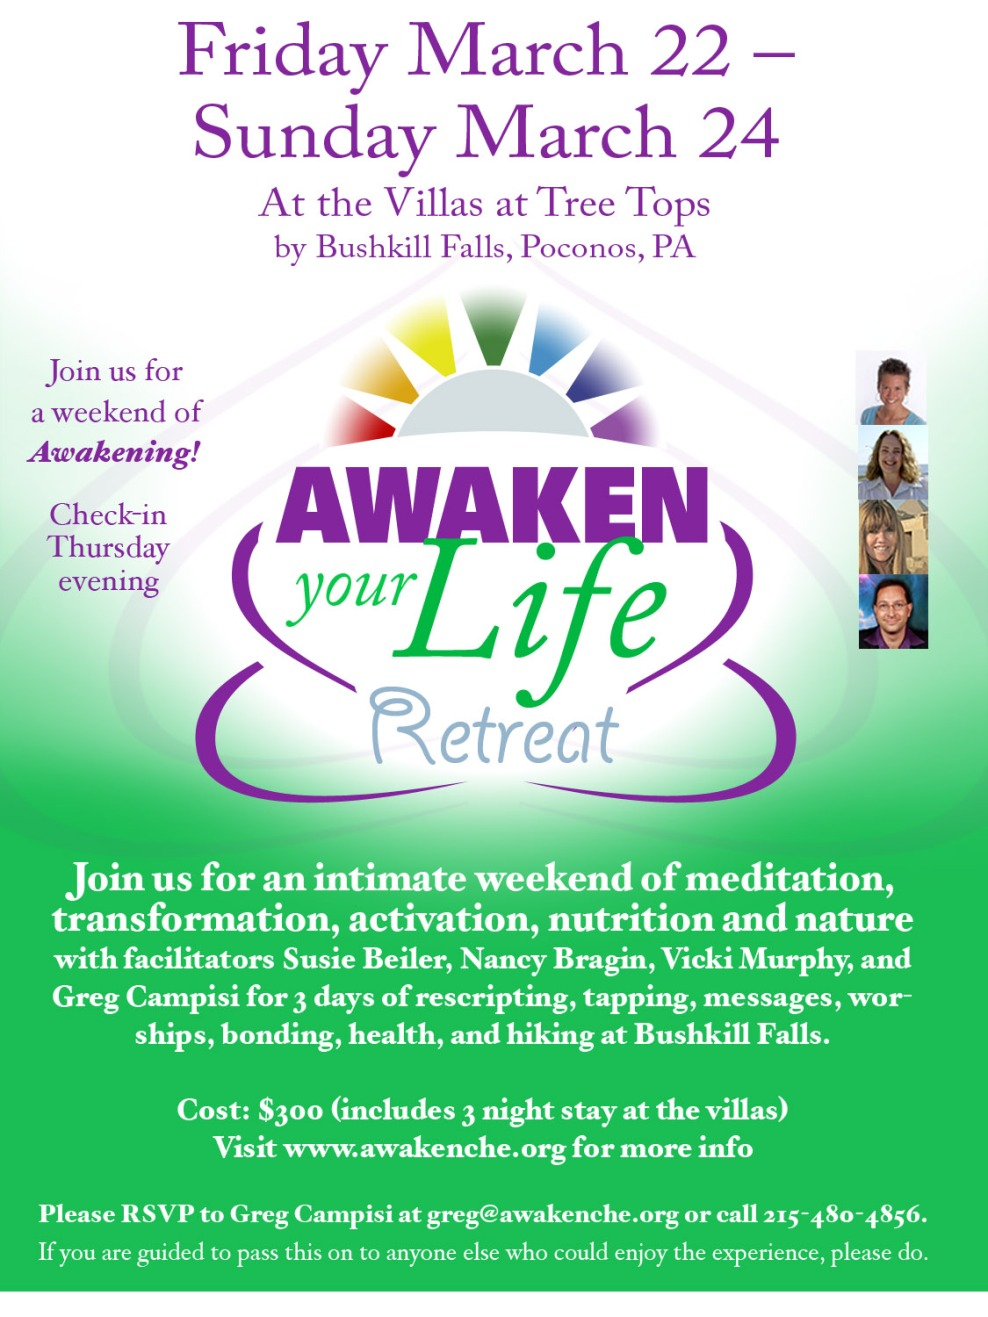 Awaken Your Life Retreat